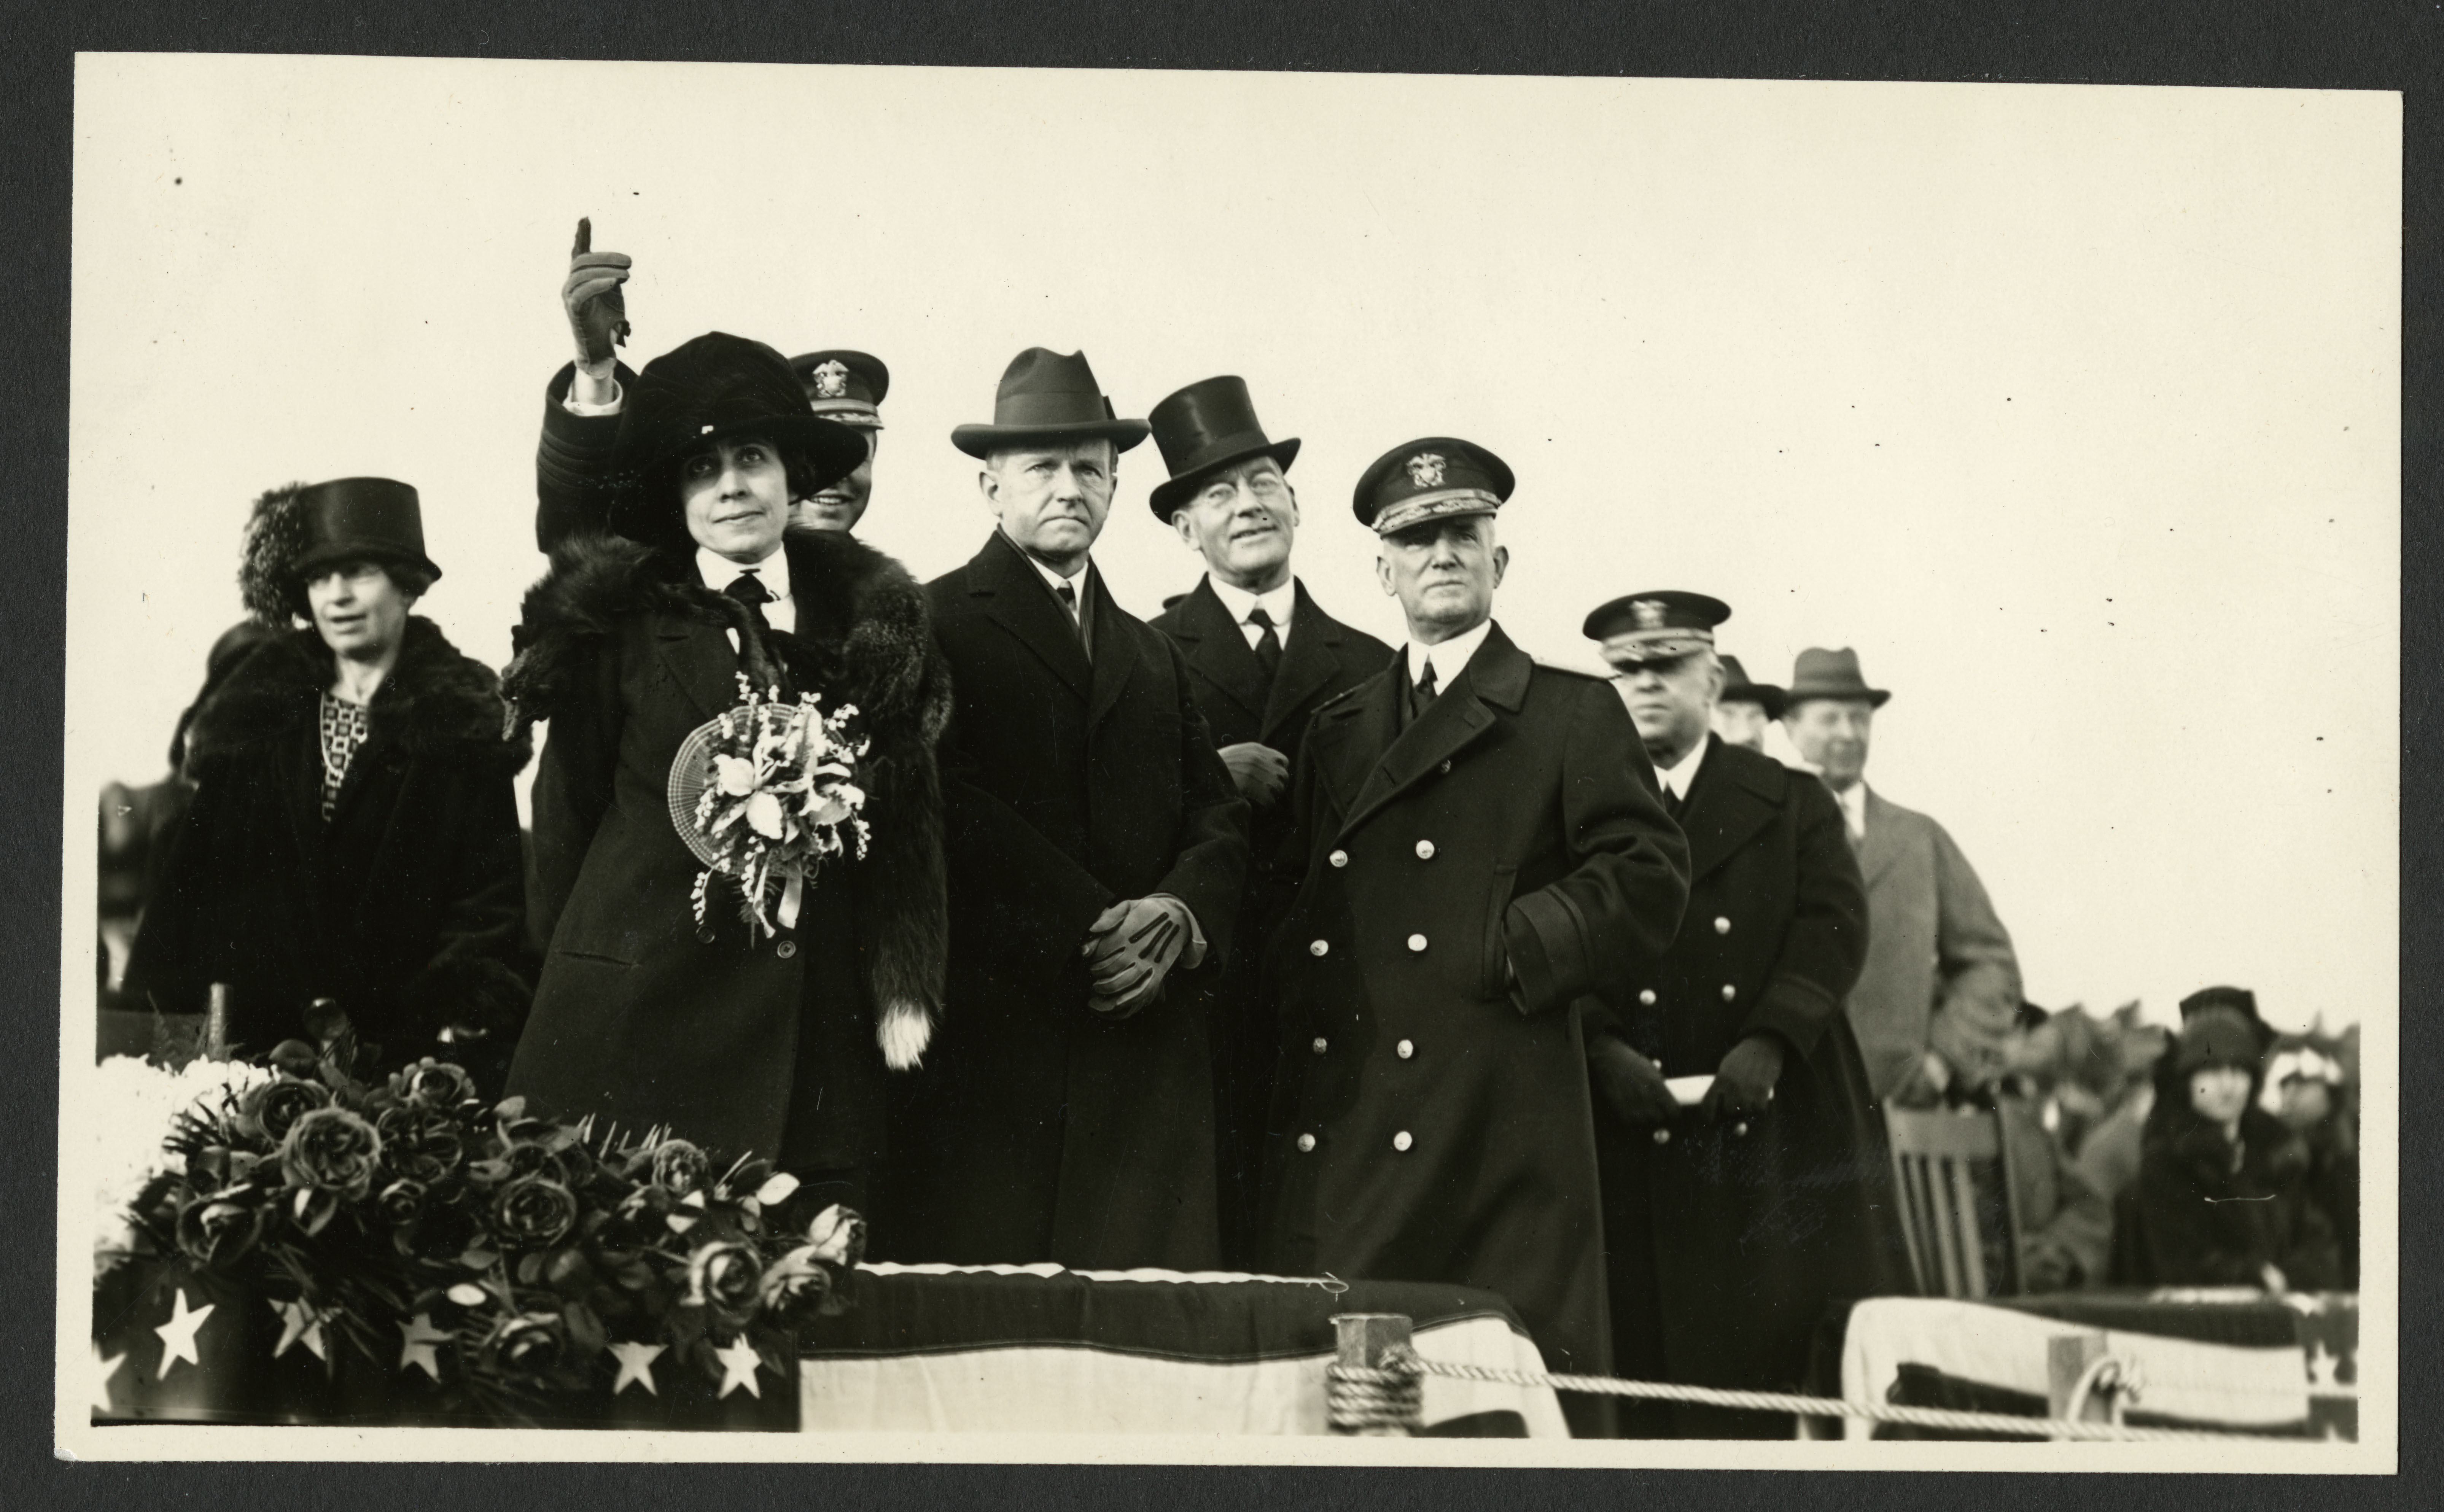 President Calvin Coolidge and first lady Grace Coolidge at the christening of the dirigible U.S.S. Los Angeles.